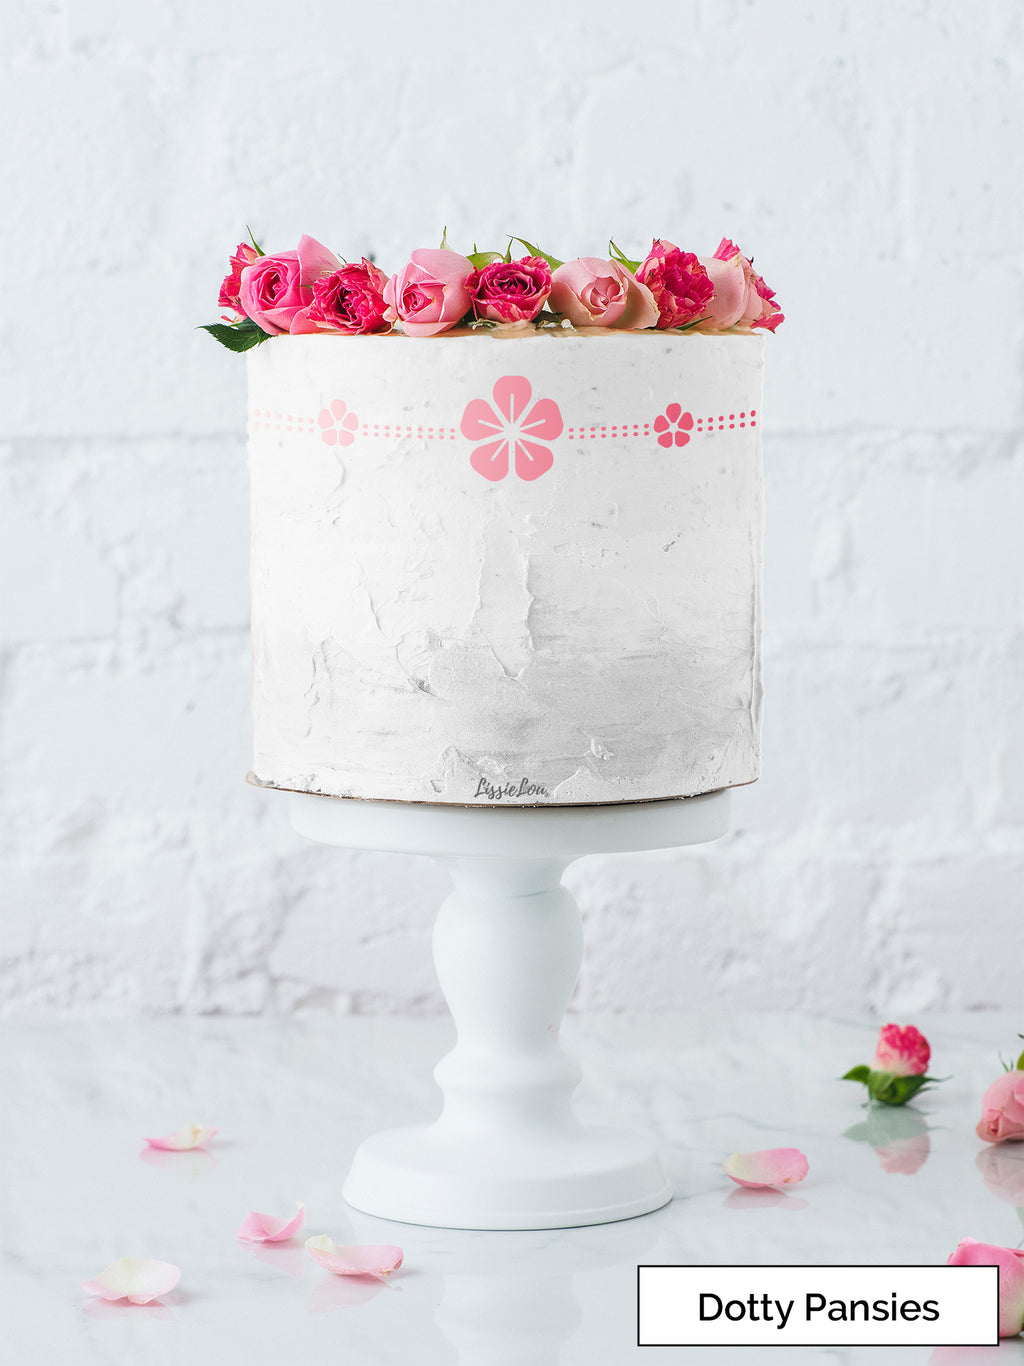 Dotty Pansies Cake Stencil - Border Design